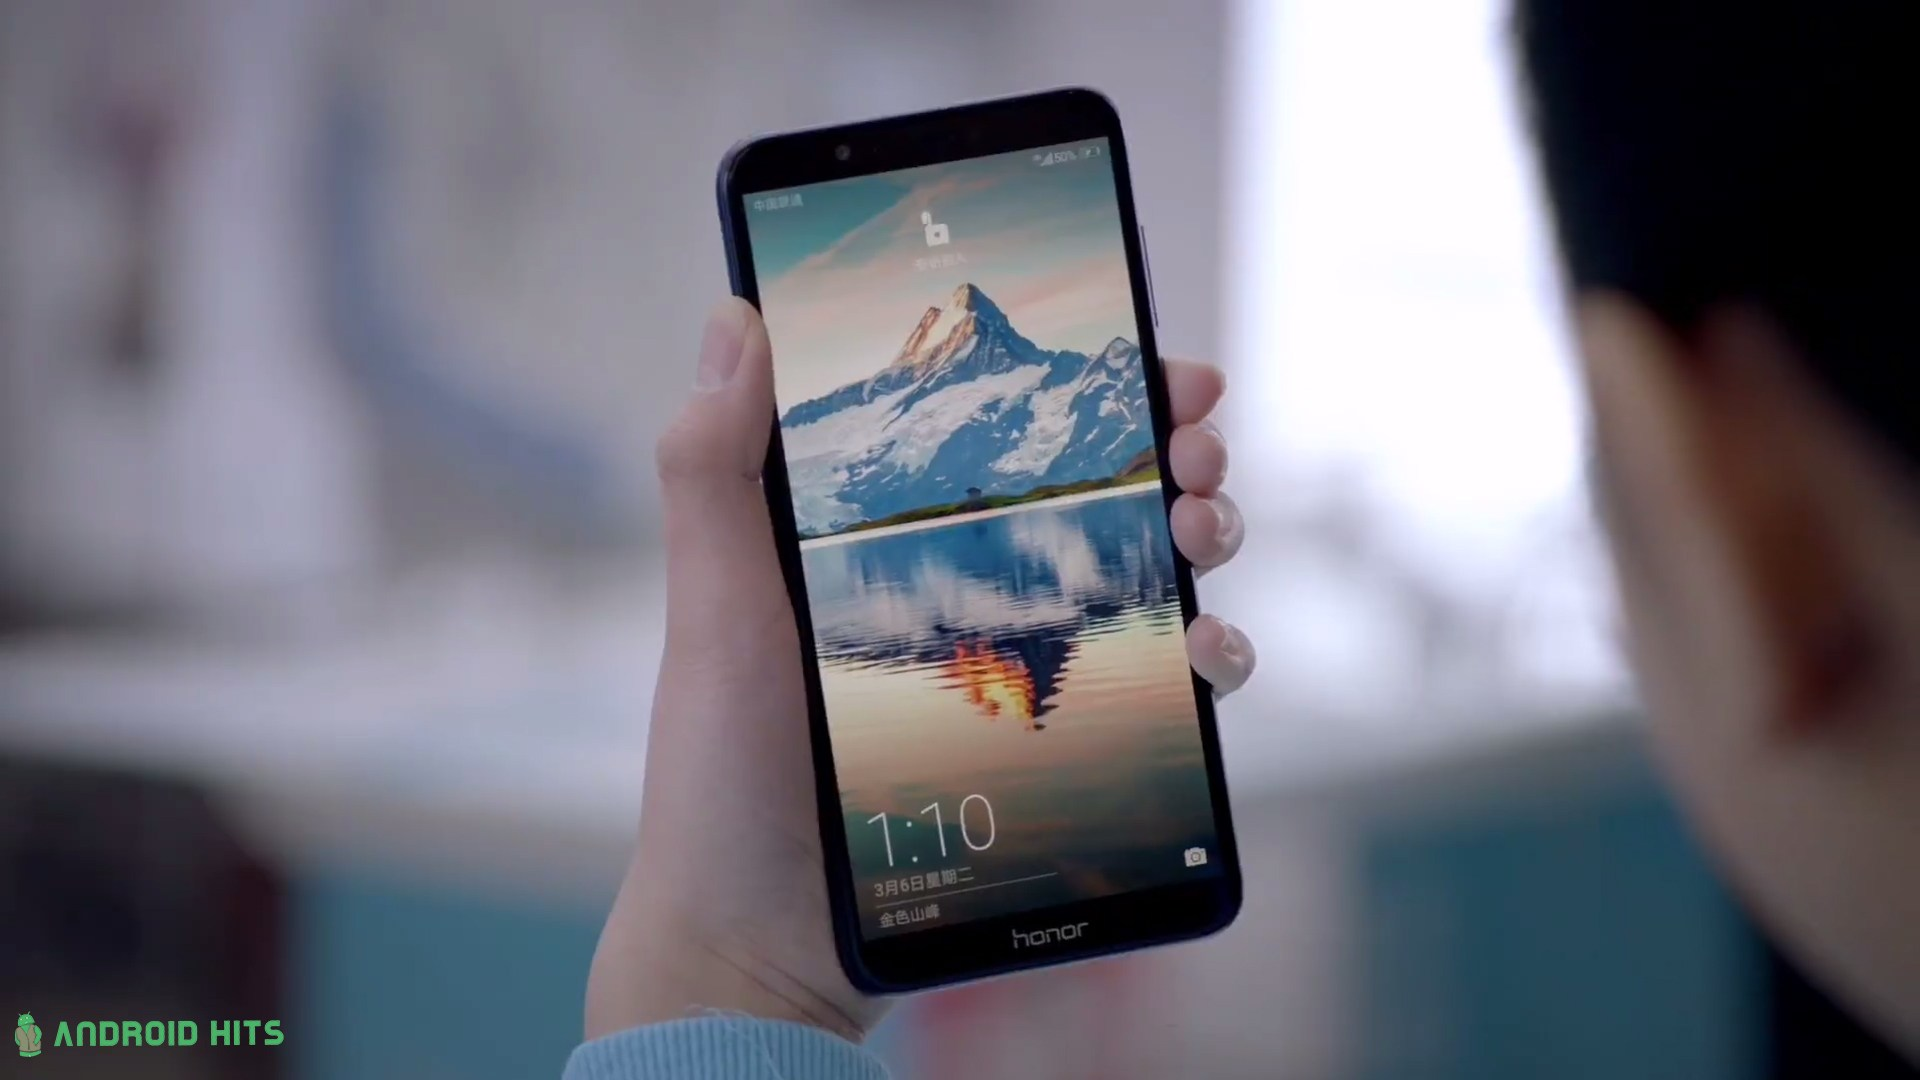 Honor 7C ad video leaked ahead of launch on March 12